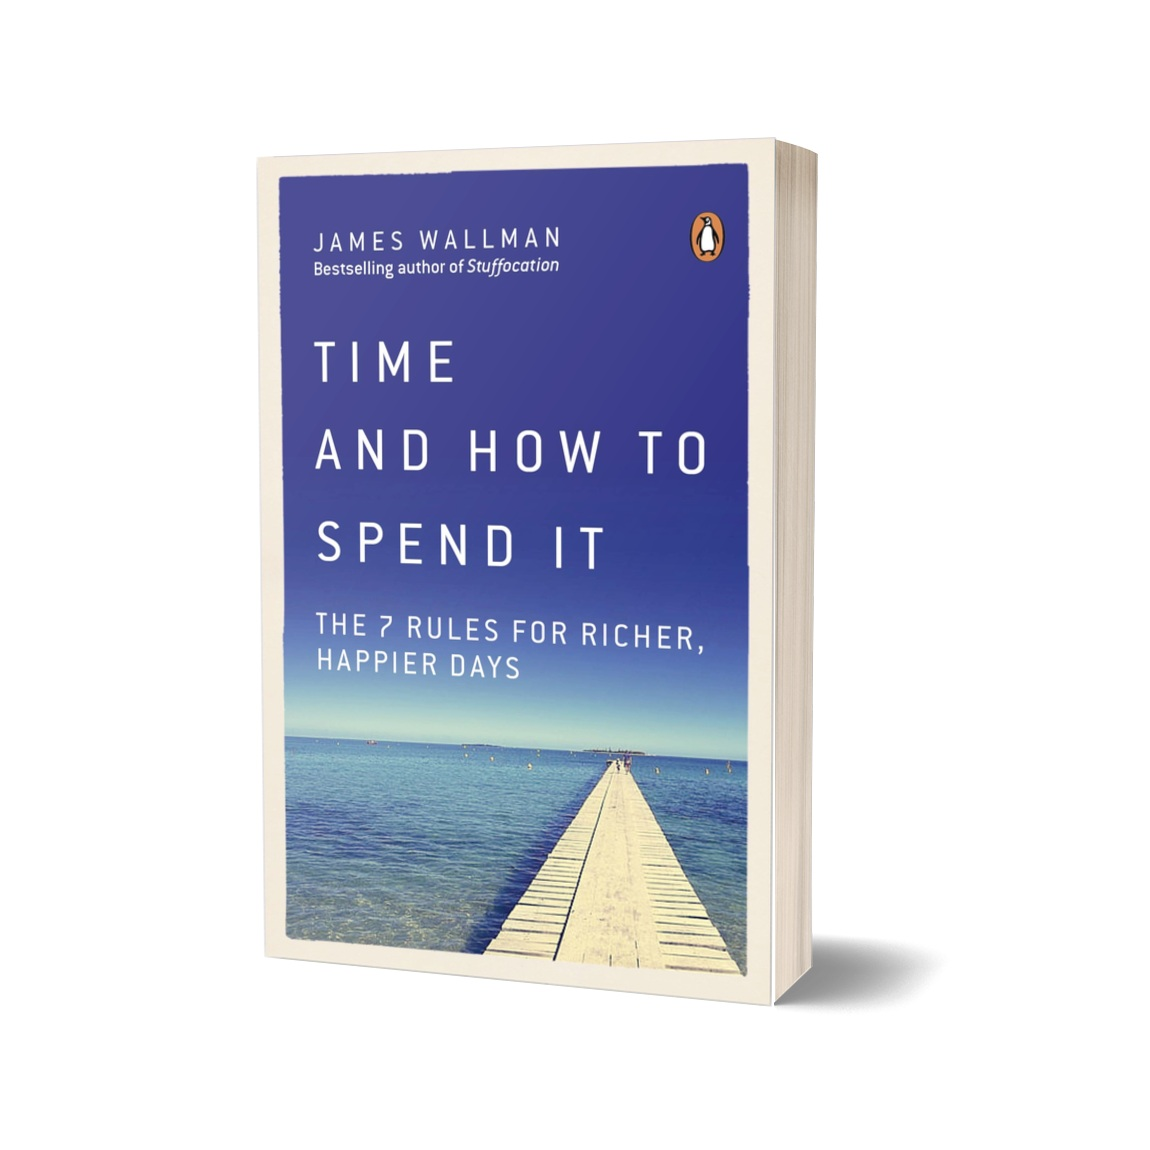 Sample chapter - Find out why we think we're time-poor, when really we're time-rich, and discover the 7-rule checklist for richer, happier living.